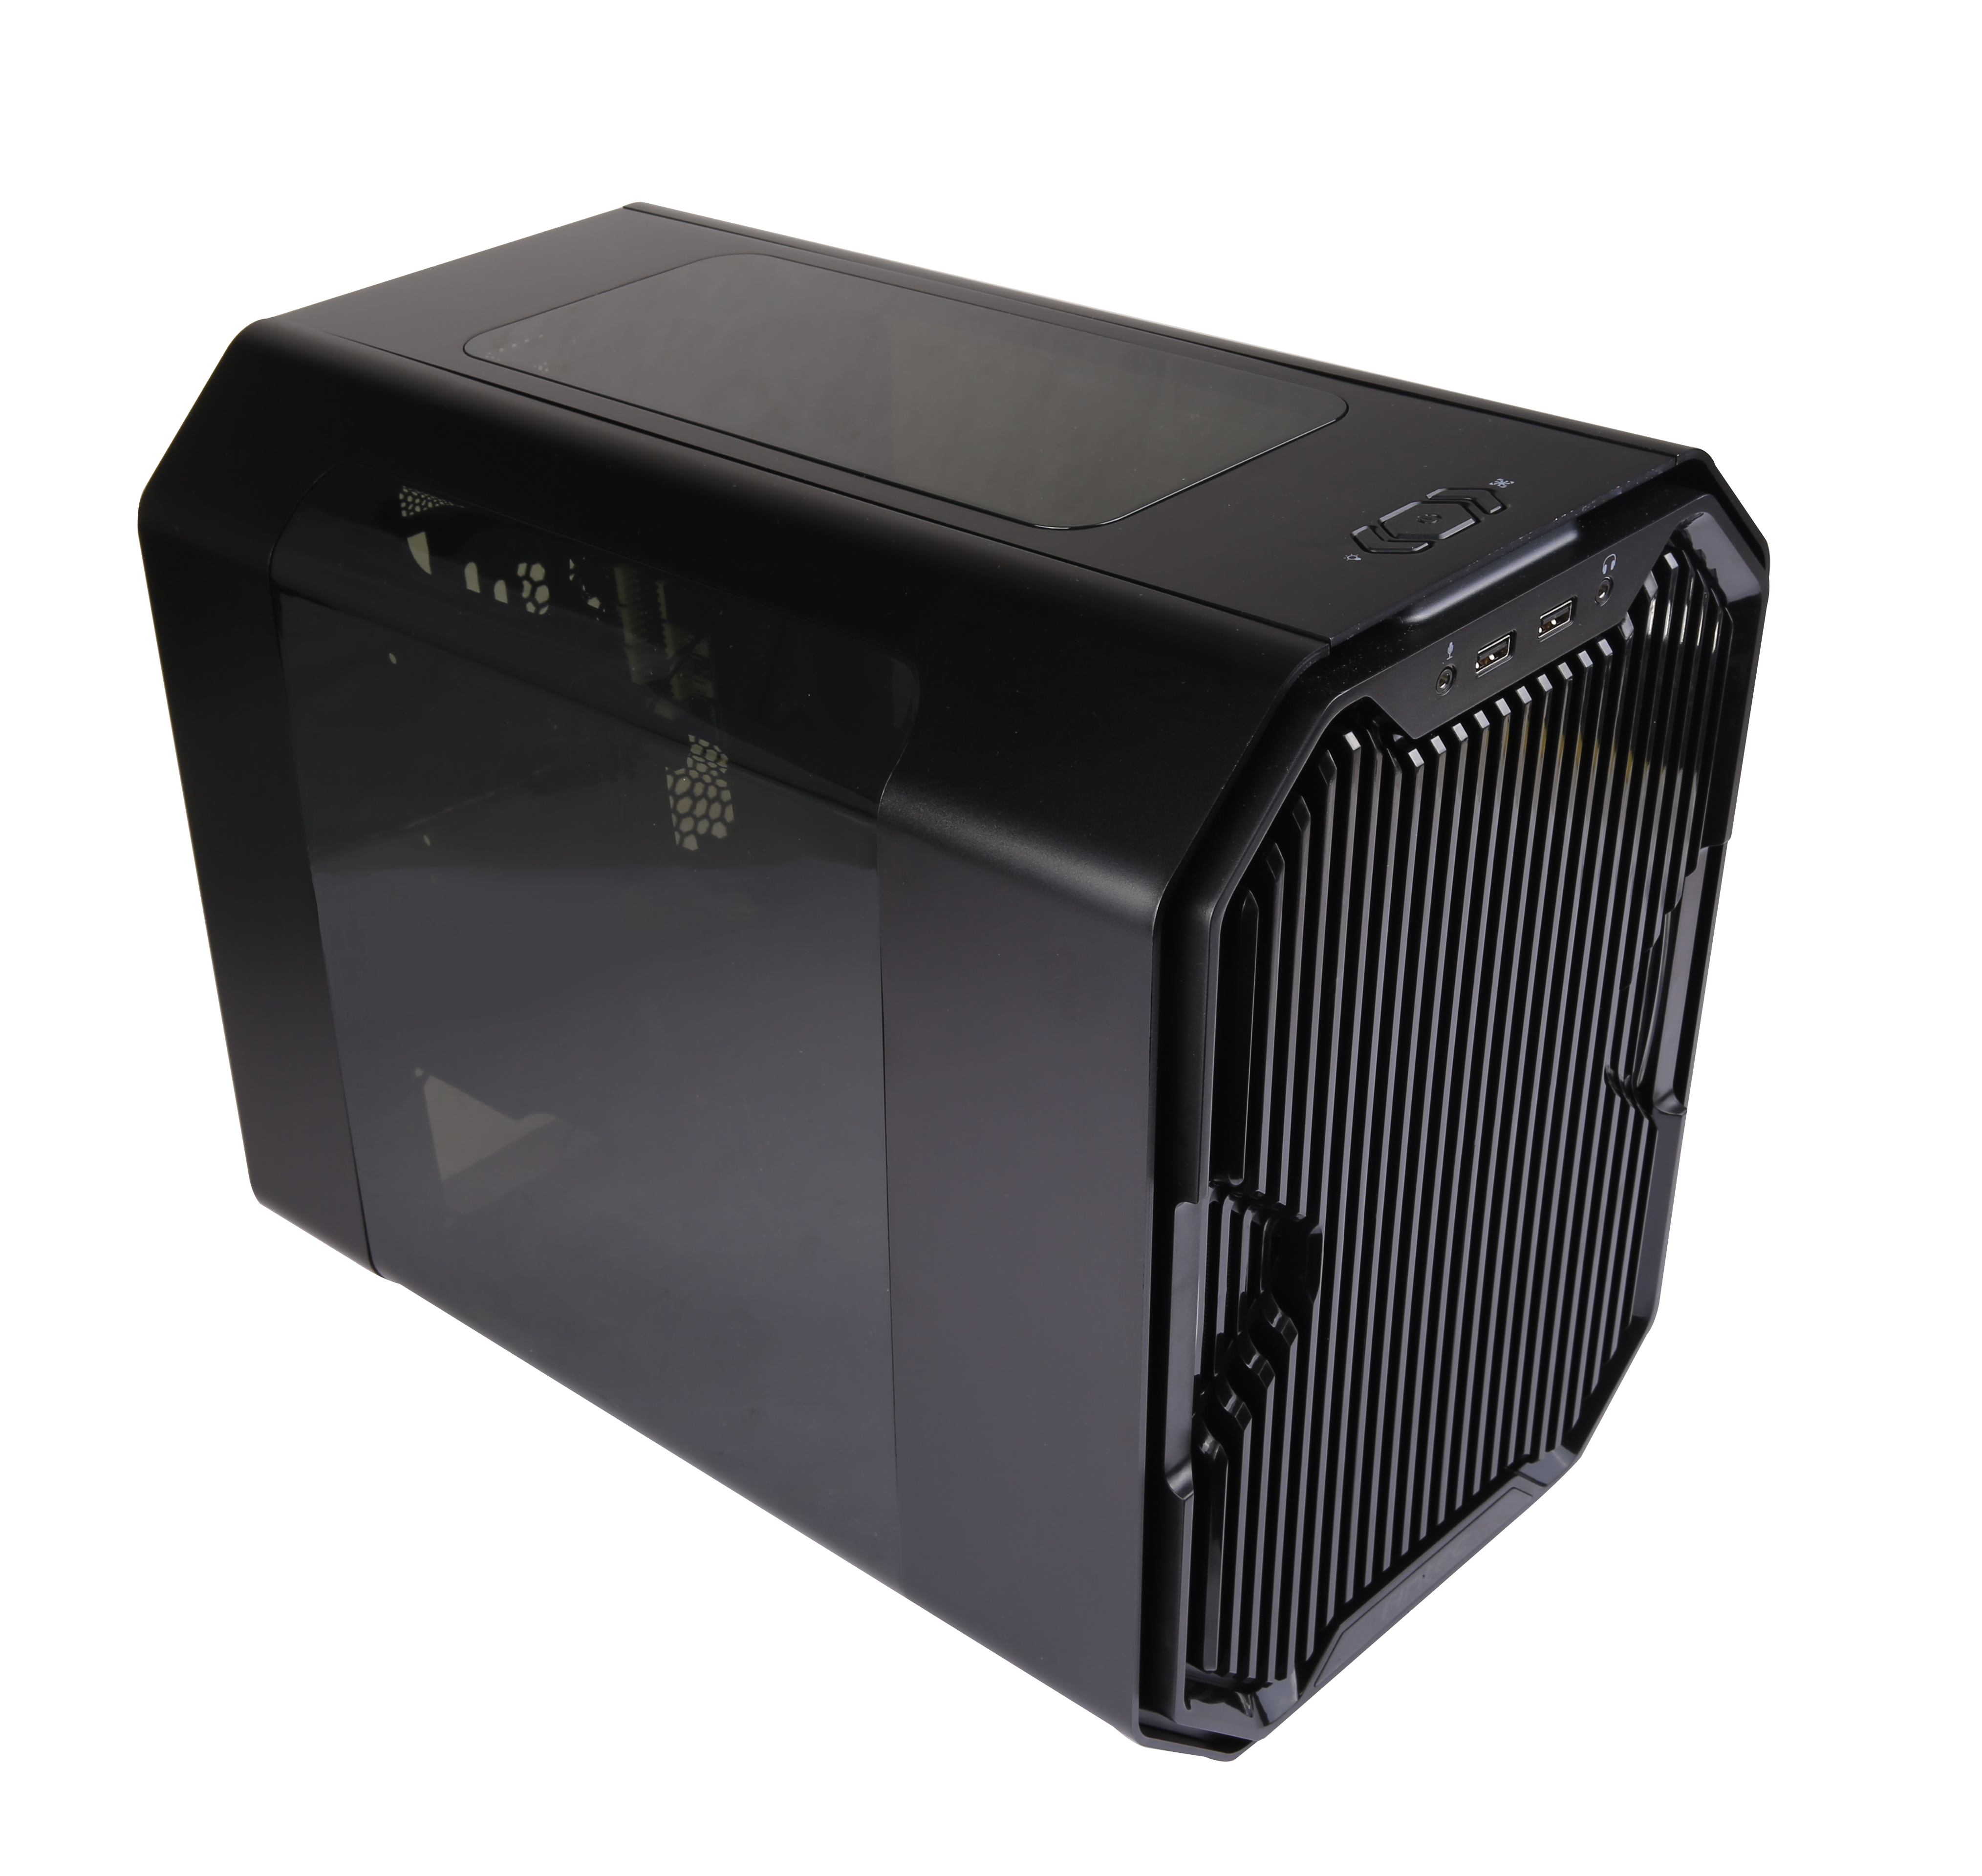 ANTEC 安鈦克 Cube_Certified by EKWB 機殼12月上市 - XFastest - B23A0949.png